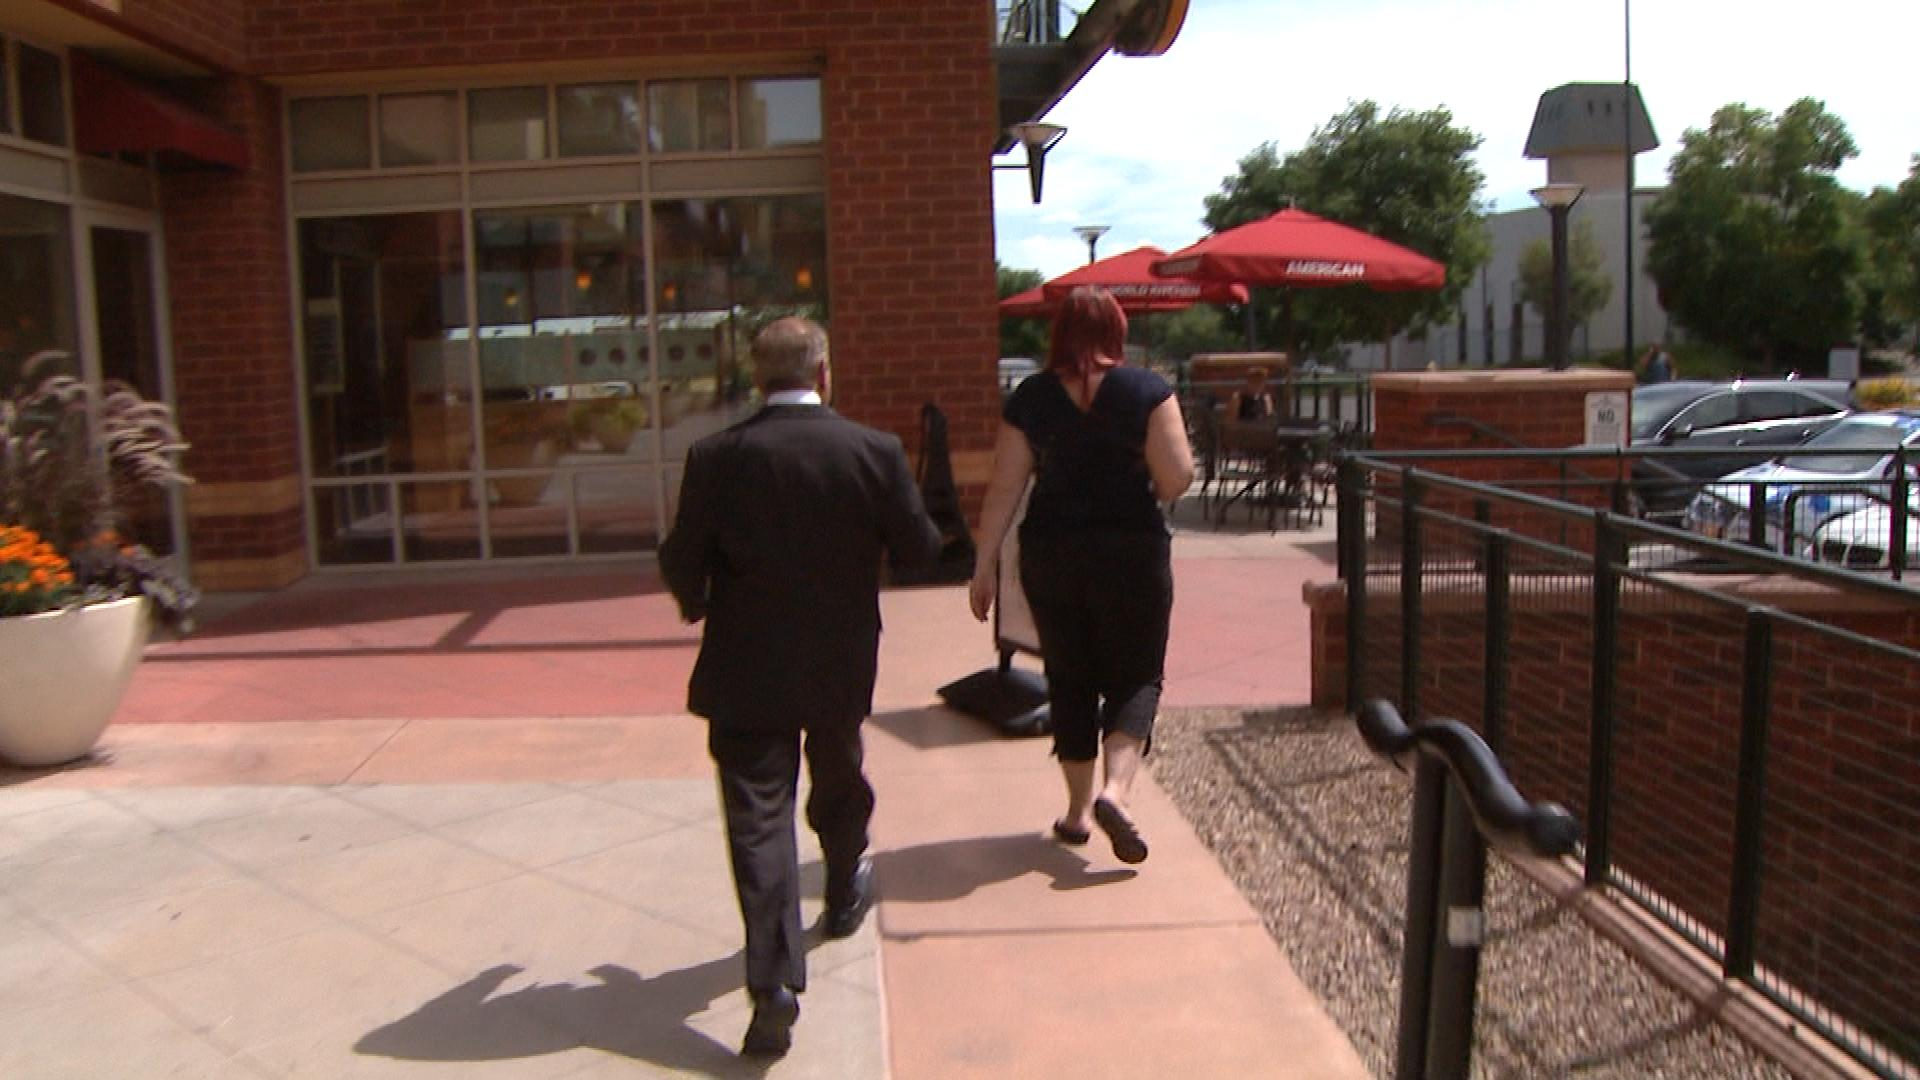 CBS4 Investigator Rick Sallinger confronting the woman from Martha Stoner (credit: CBS)